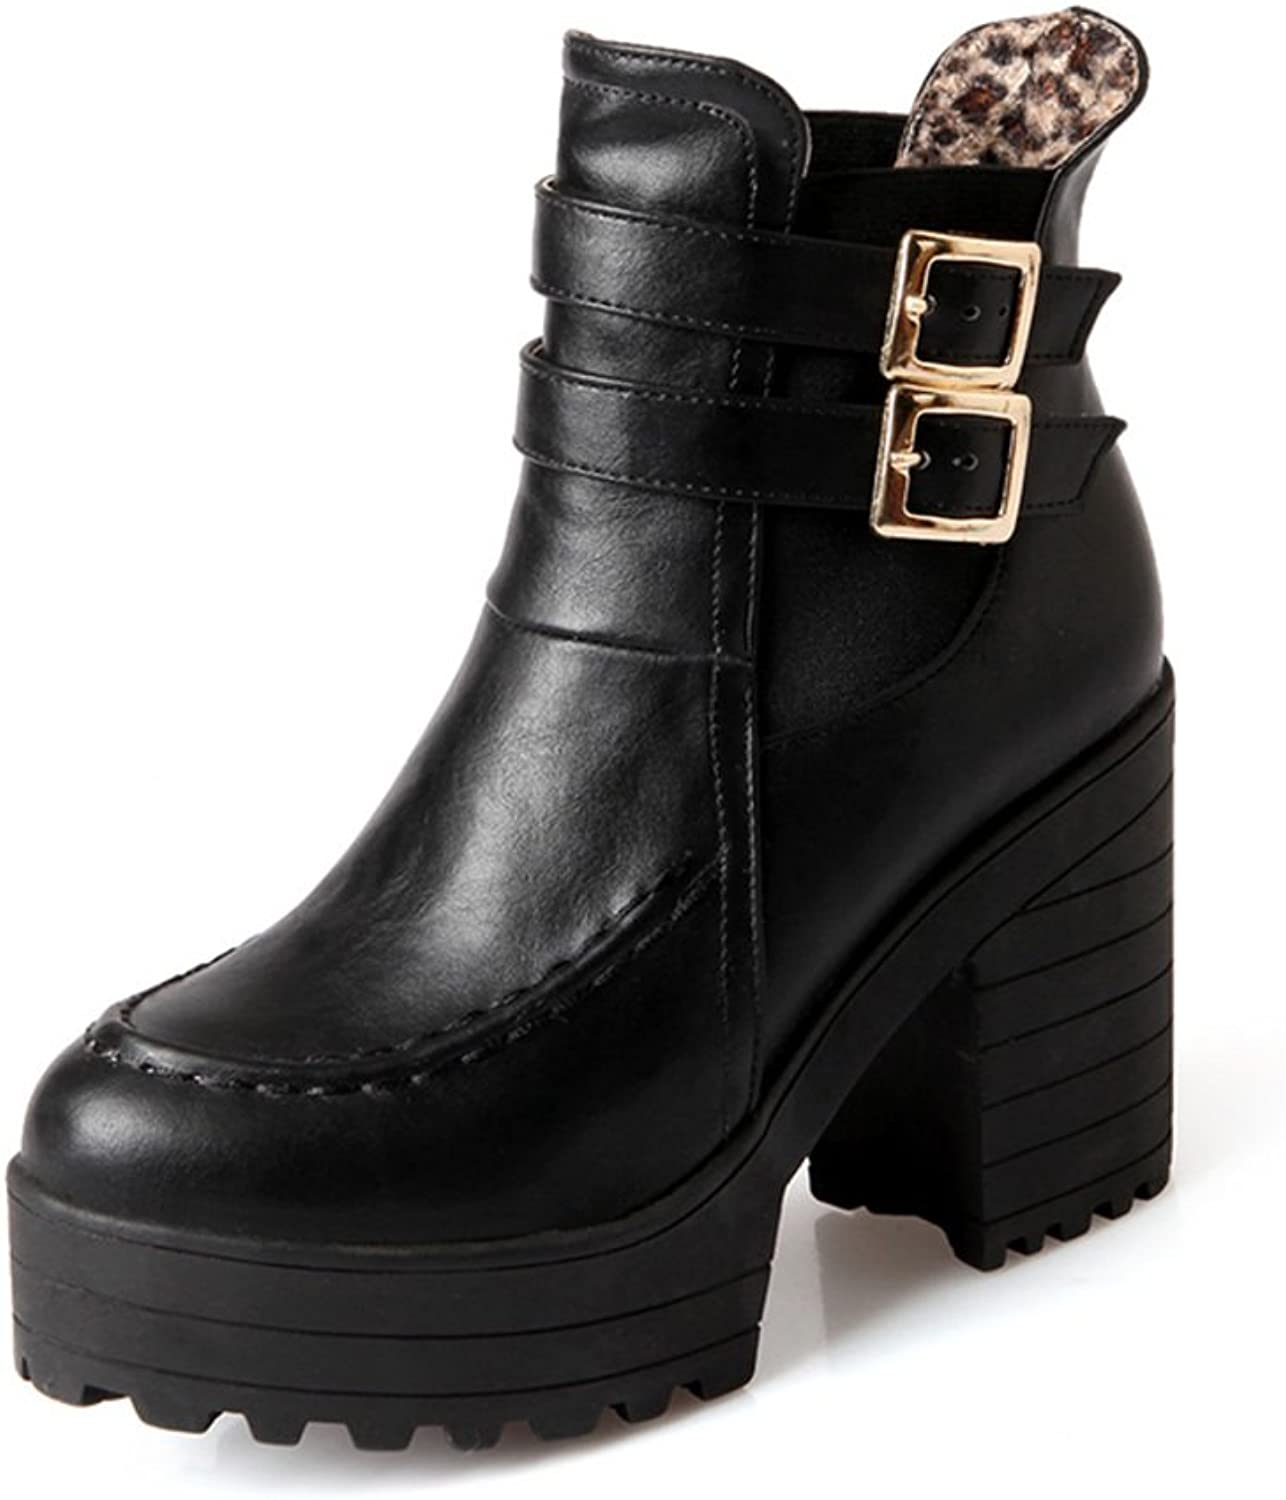 RHFDVGDS belt buckle boot in autumn and winter Platform chunky heels high heels short boots fashion Lady boots